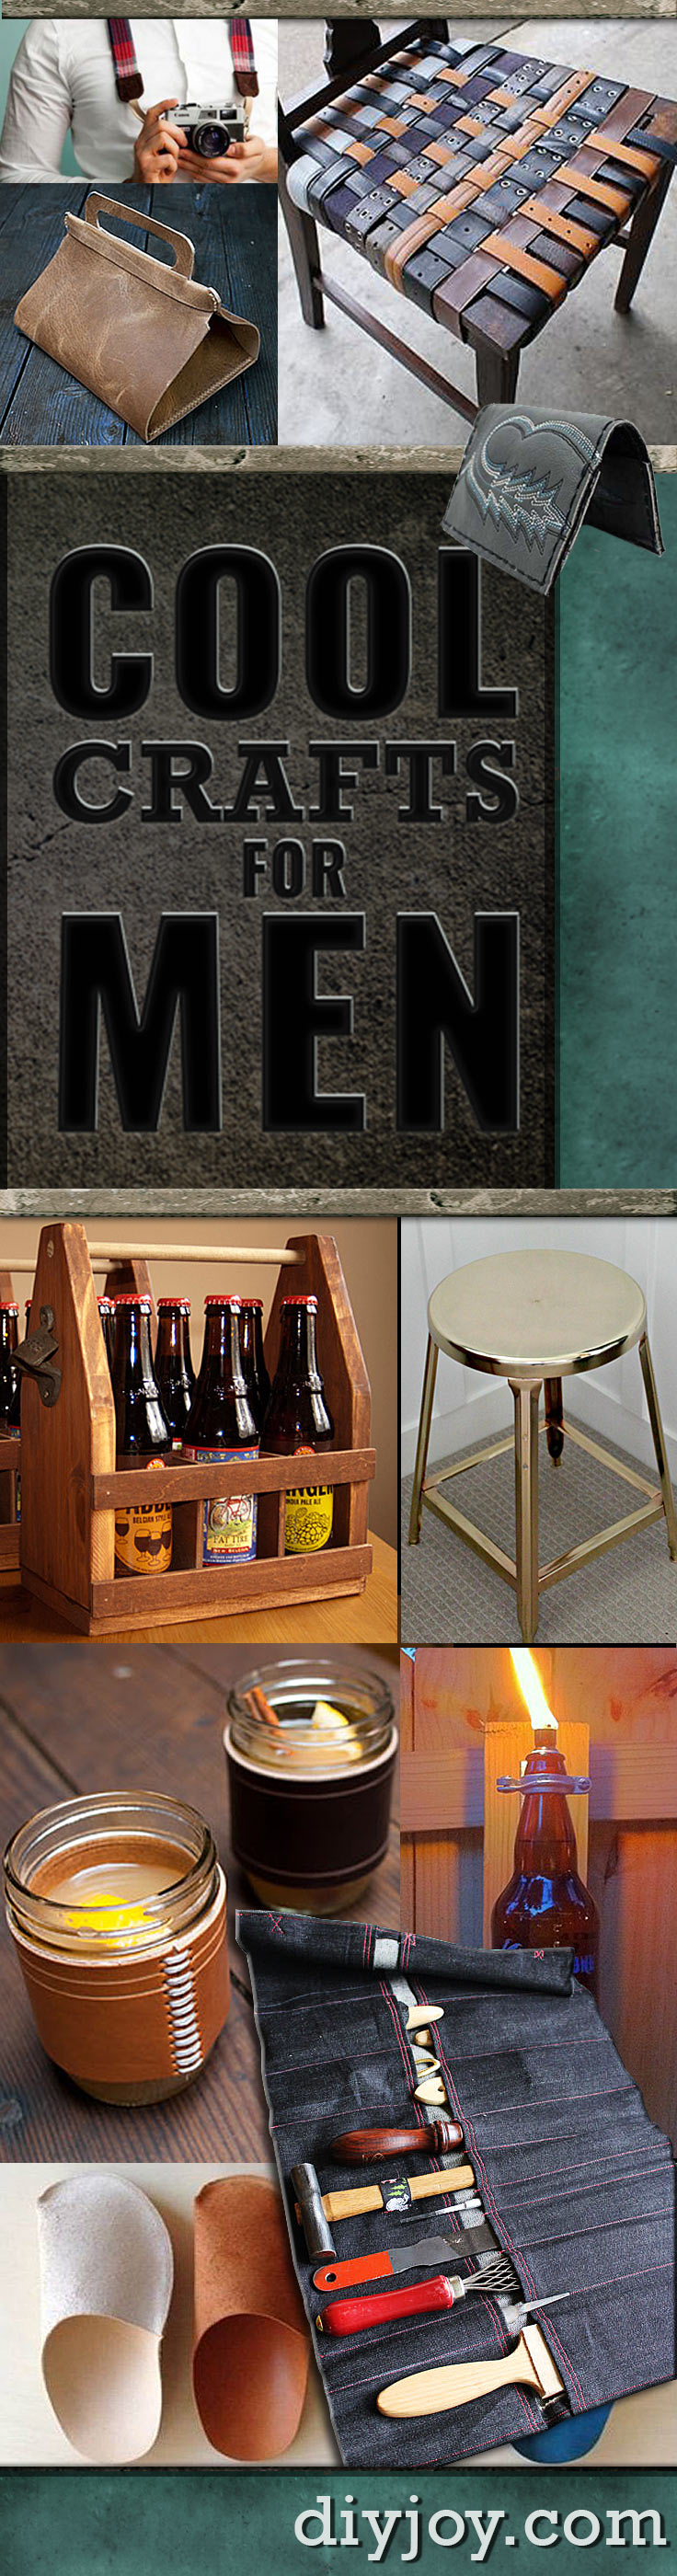 Crafts for Men - Easy DIY Project Ideas for Guys - Cool Fathers Day Gifts and Ideas for Dad - Fun Man Cave Ideas - Homemade Gifts and Manly Decor Ideas - Do It Yourself Games and Gear. Tutorials for Creative Projects to Make for A Man | Super DIY Gift Ideas for the Boyfriend, Husband, Brother and Father - Dad #mensgifts #diyideas #diygifts